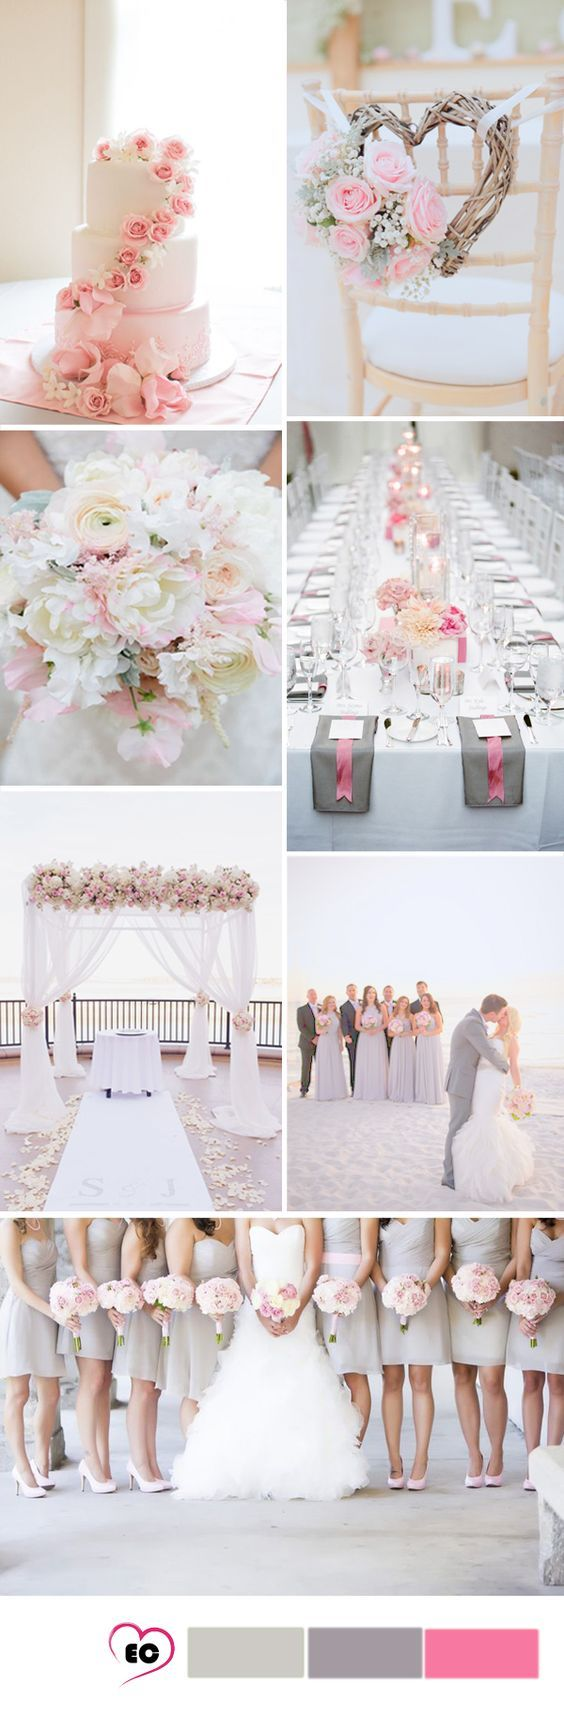 17 best ideas about dusky pink weddings on pinterest. Black Bedroom Furniture Sets. Home Design Ideas